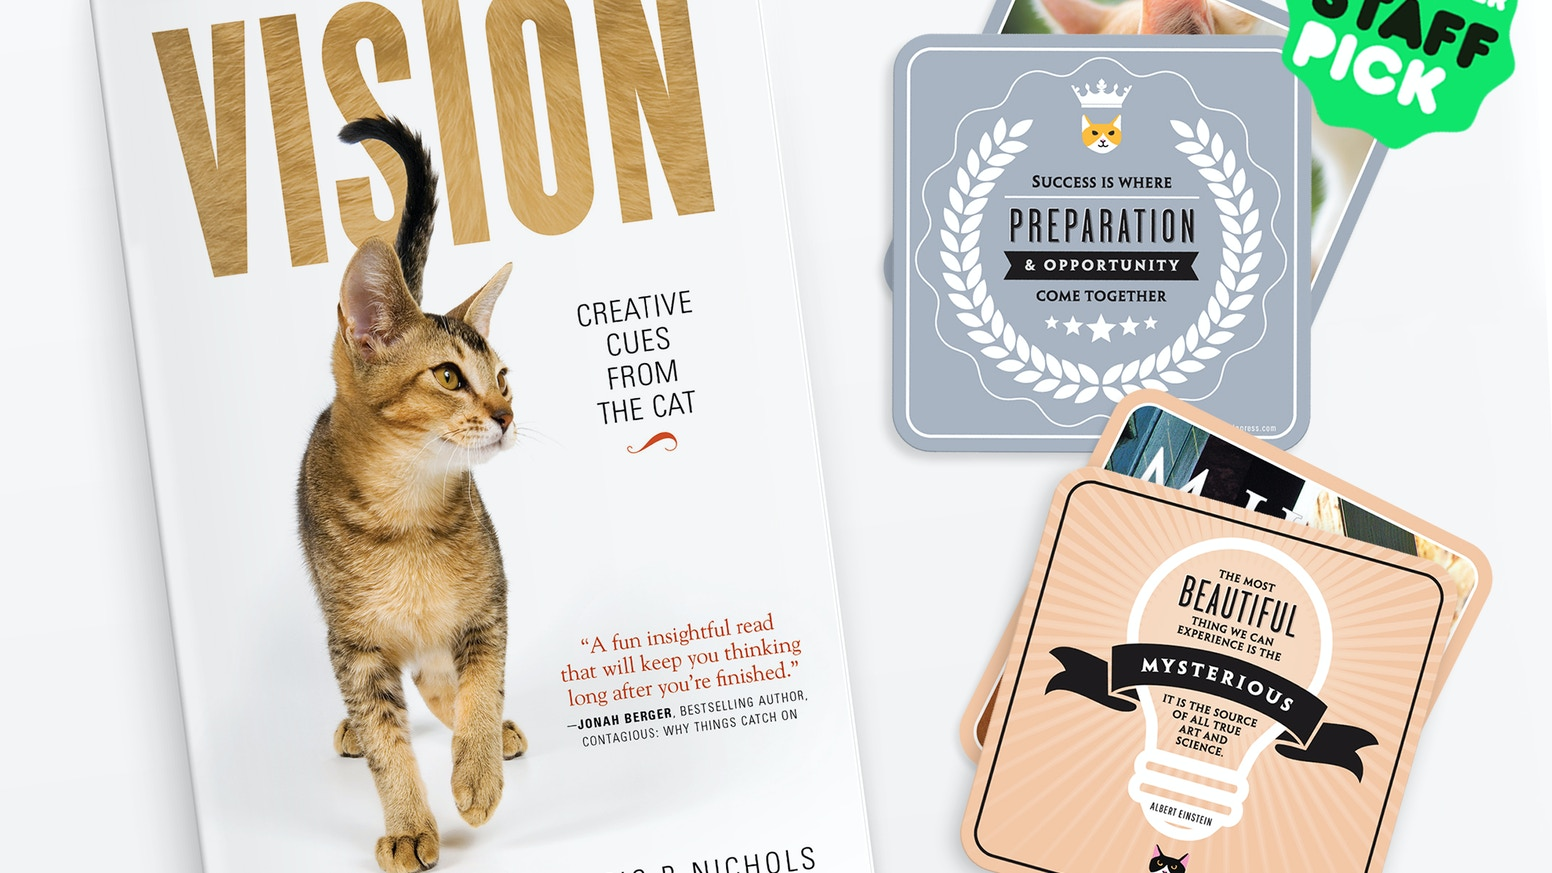 VISION is an artfully designed book featuring 15 feline traits that teach us how to be creative people of vision. Note: The title of VISION was changed to Creative Cues From the Cat: The Visionary Virtues of our Feline Friends.